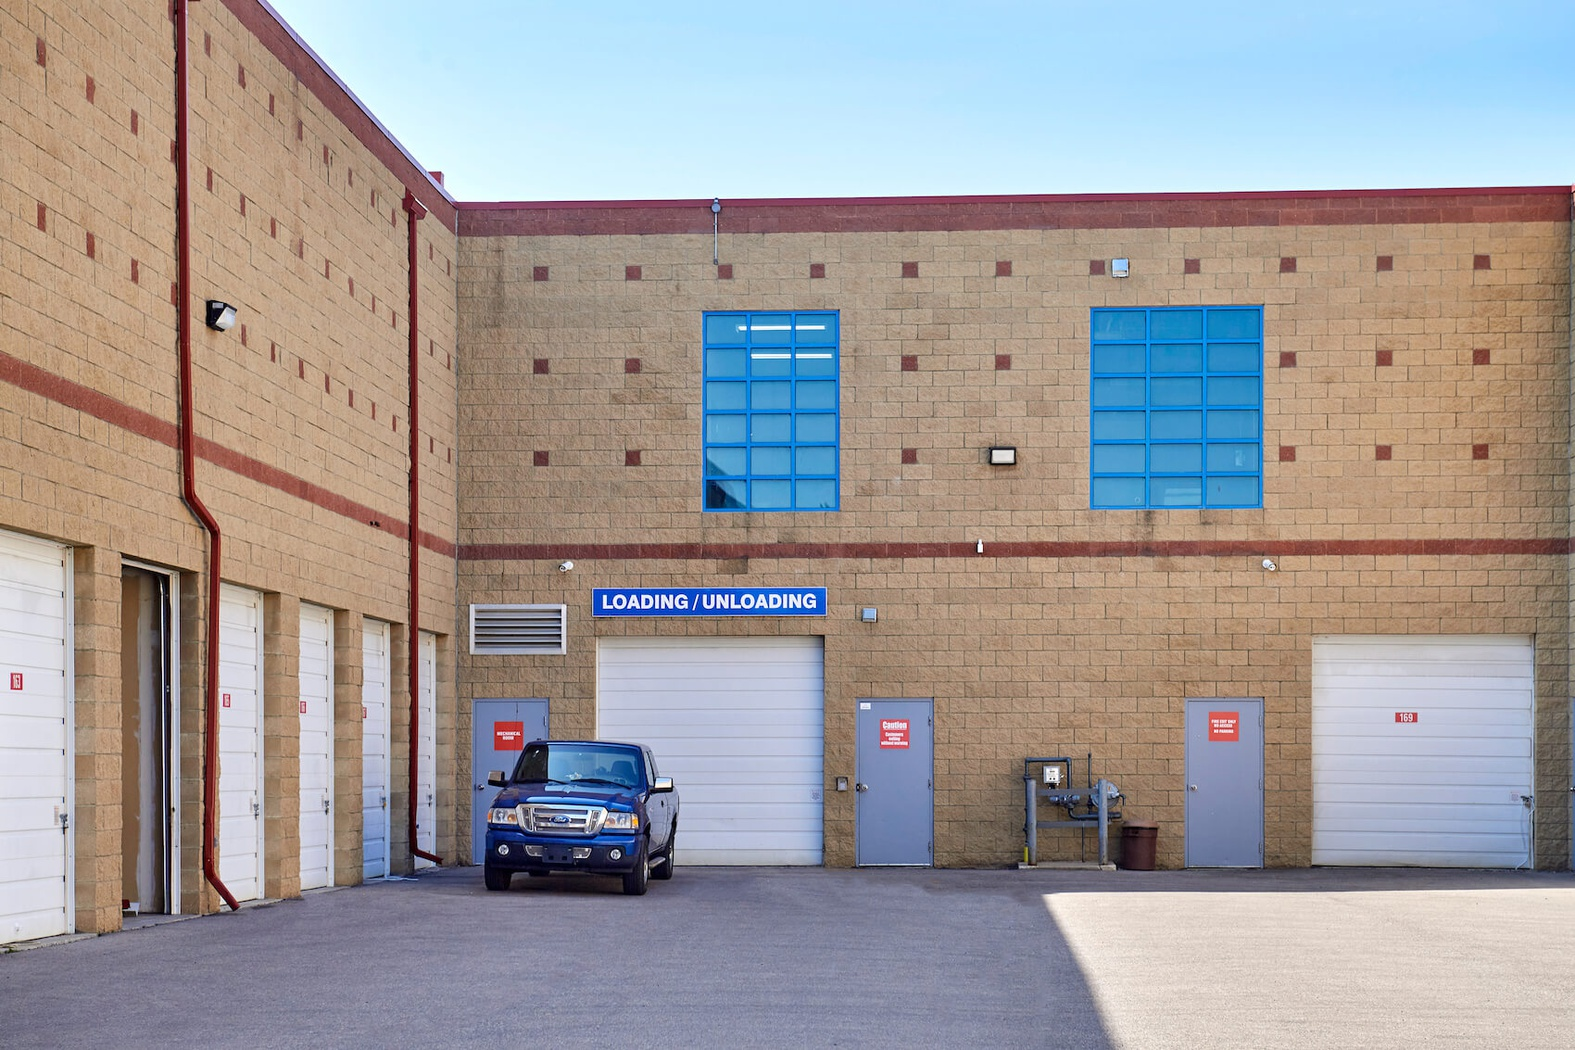 Rent Calgary McKenzie storage units at 4205 116 Avenue SE. We offer a wide-range of affordable self storage units and your first 4 weeks are free!